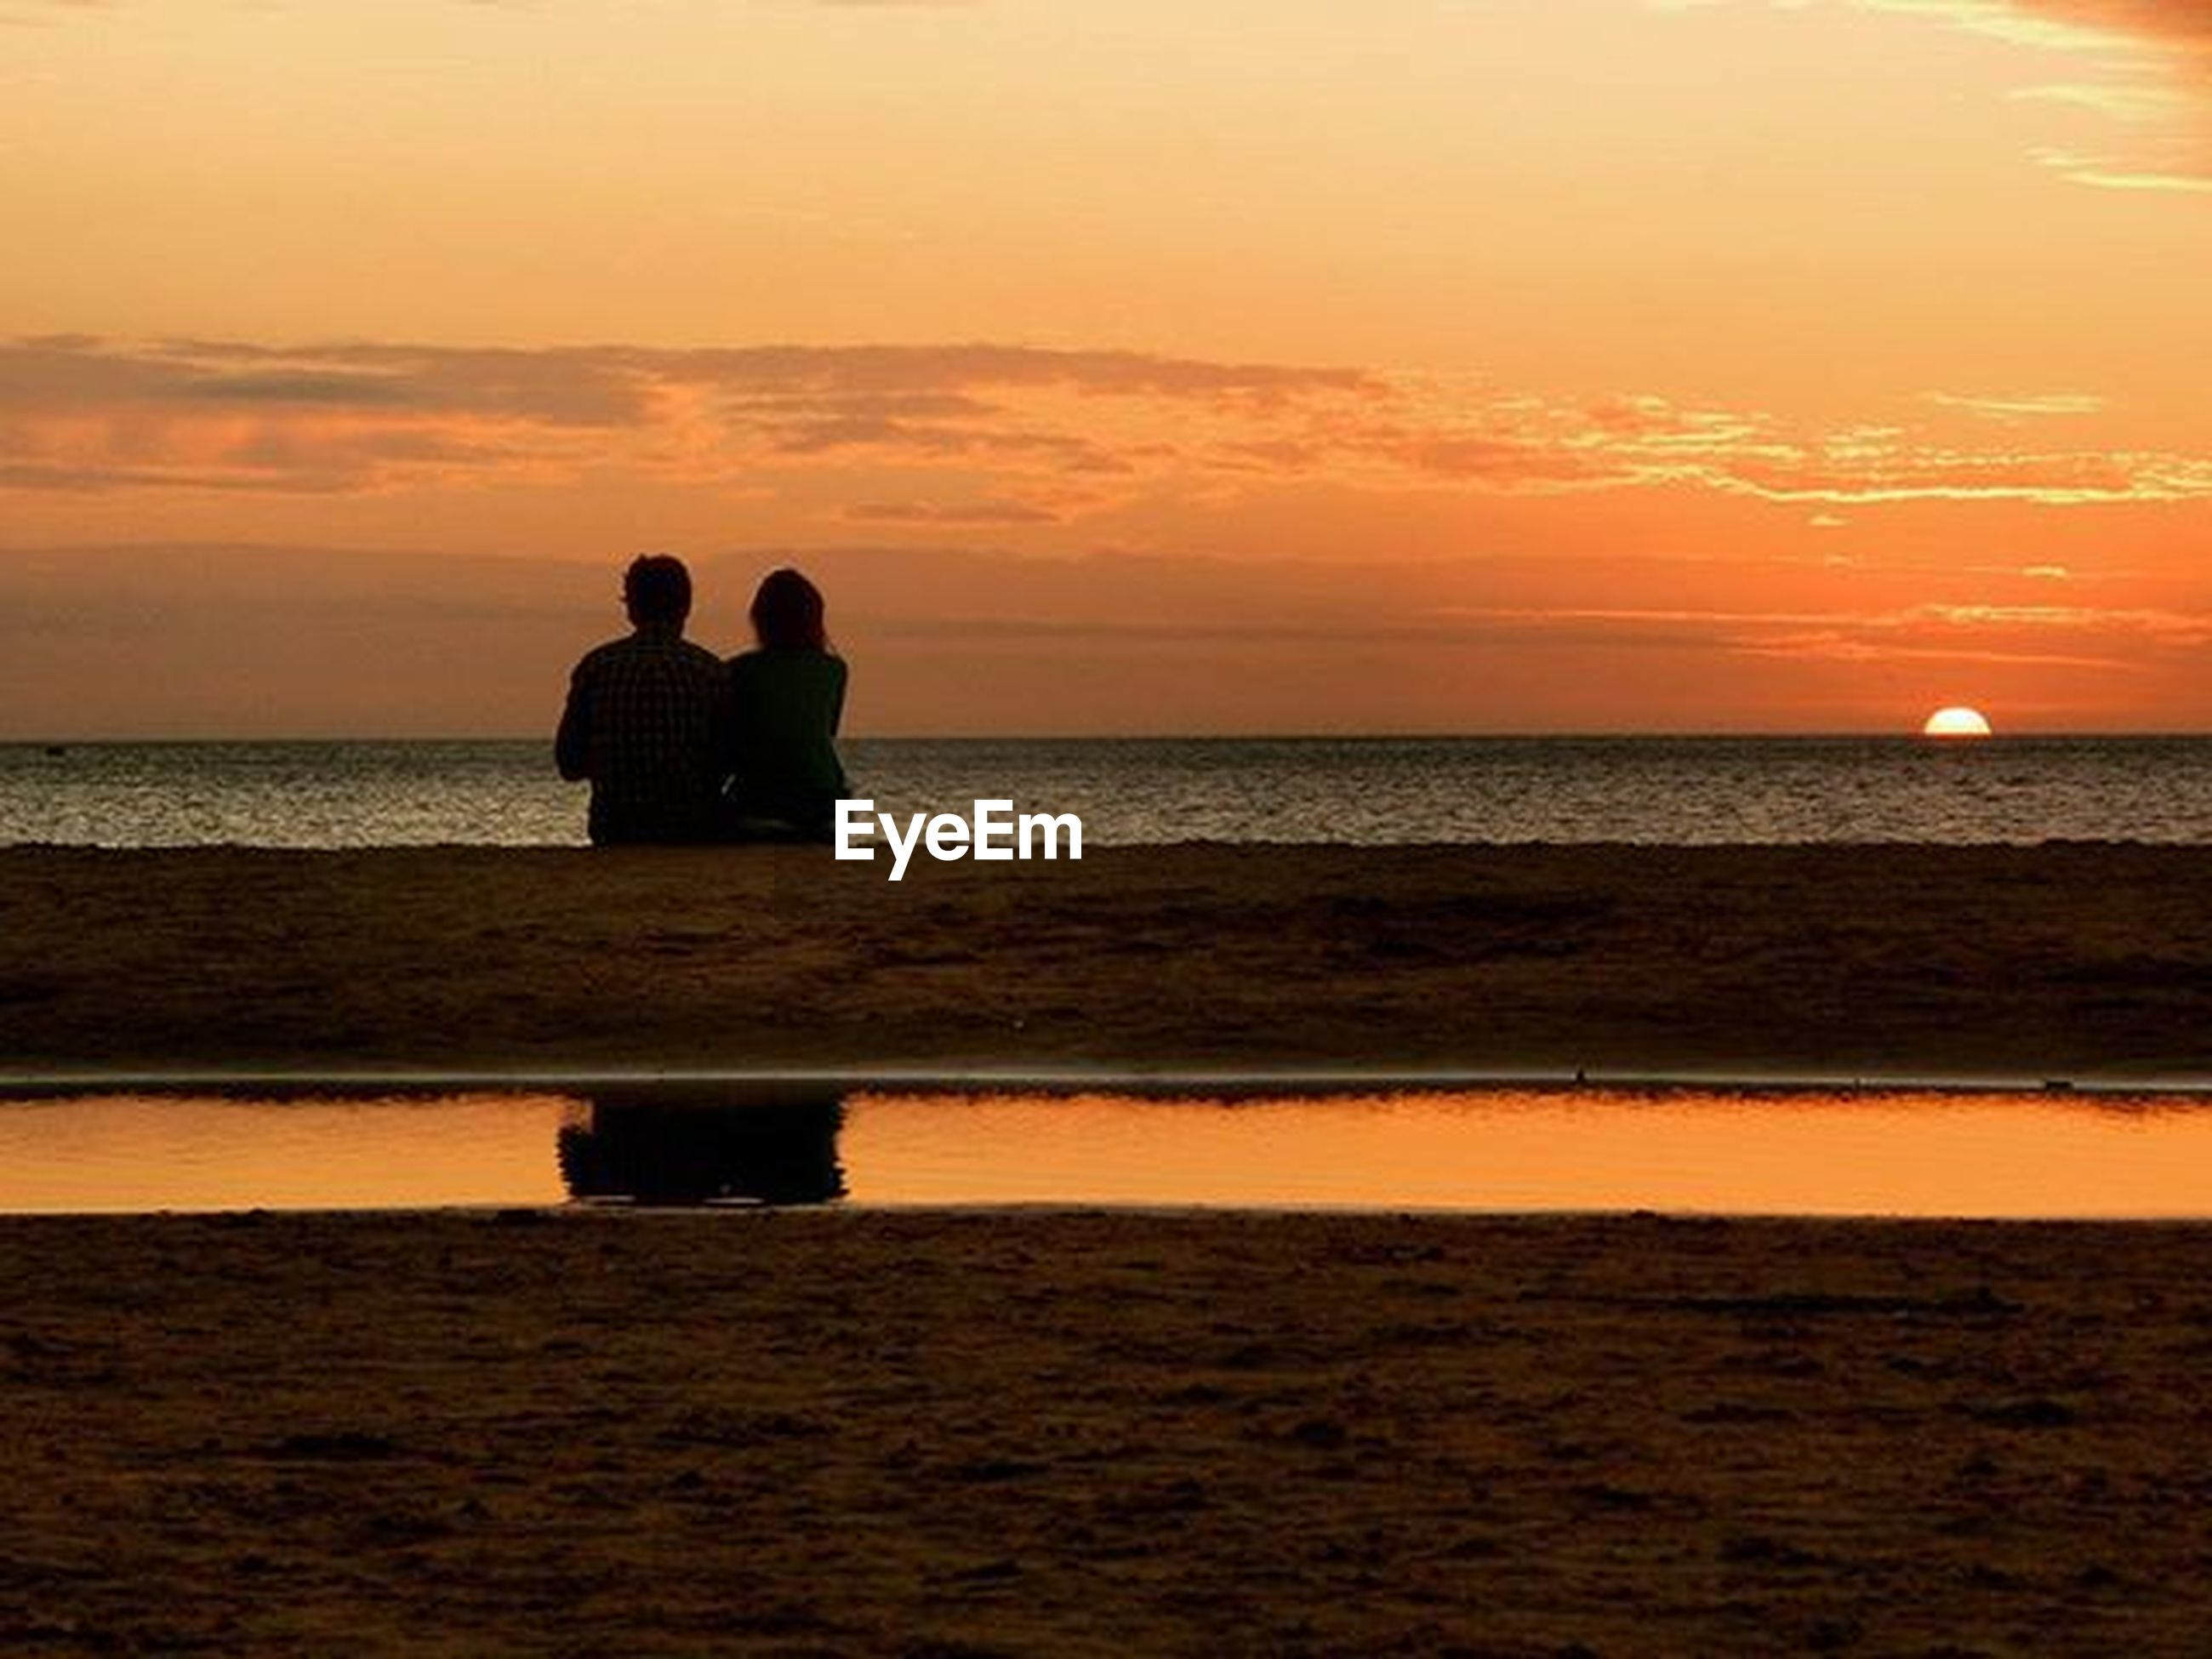 sea, sunset, horizon over water, water, silhouette, orange color, scenics, sky, beauty in nature, tranquil scene, tranquility, idyllic, nature, men, leisure activity, lifestyles, beach, standing